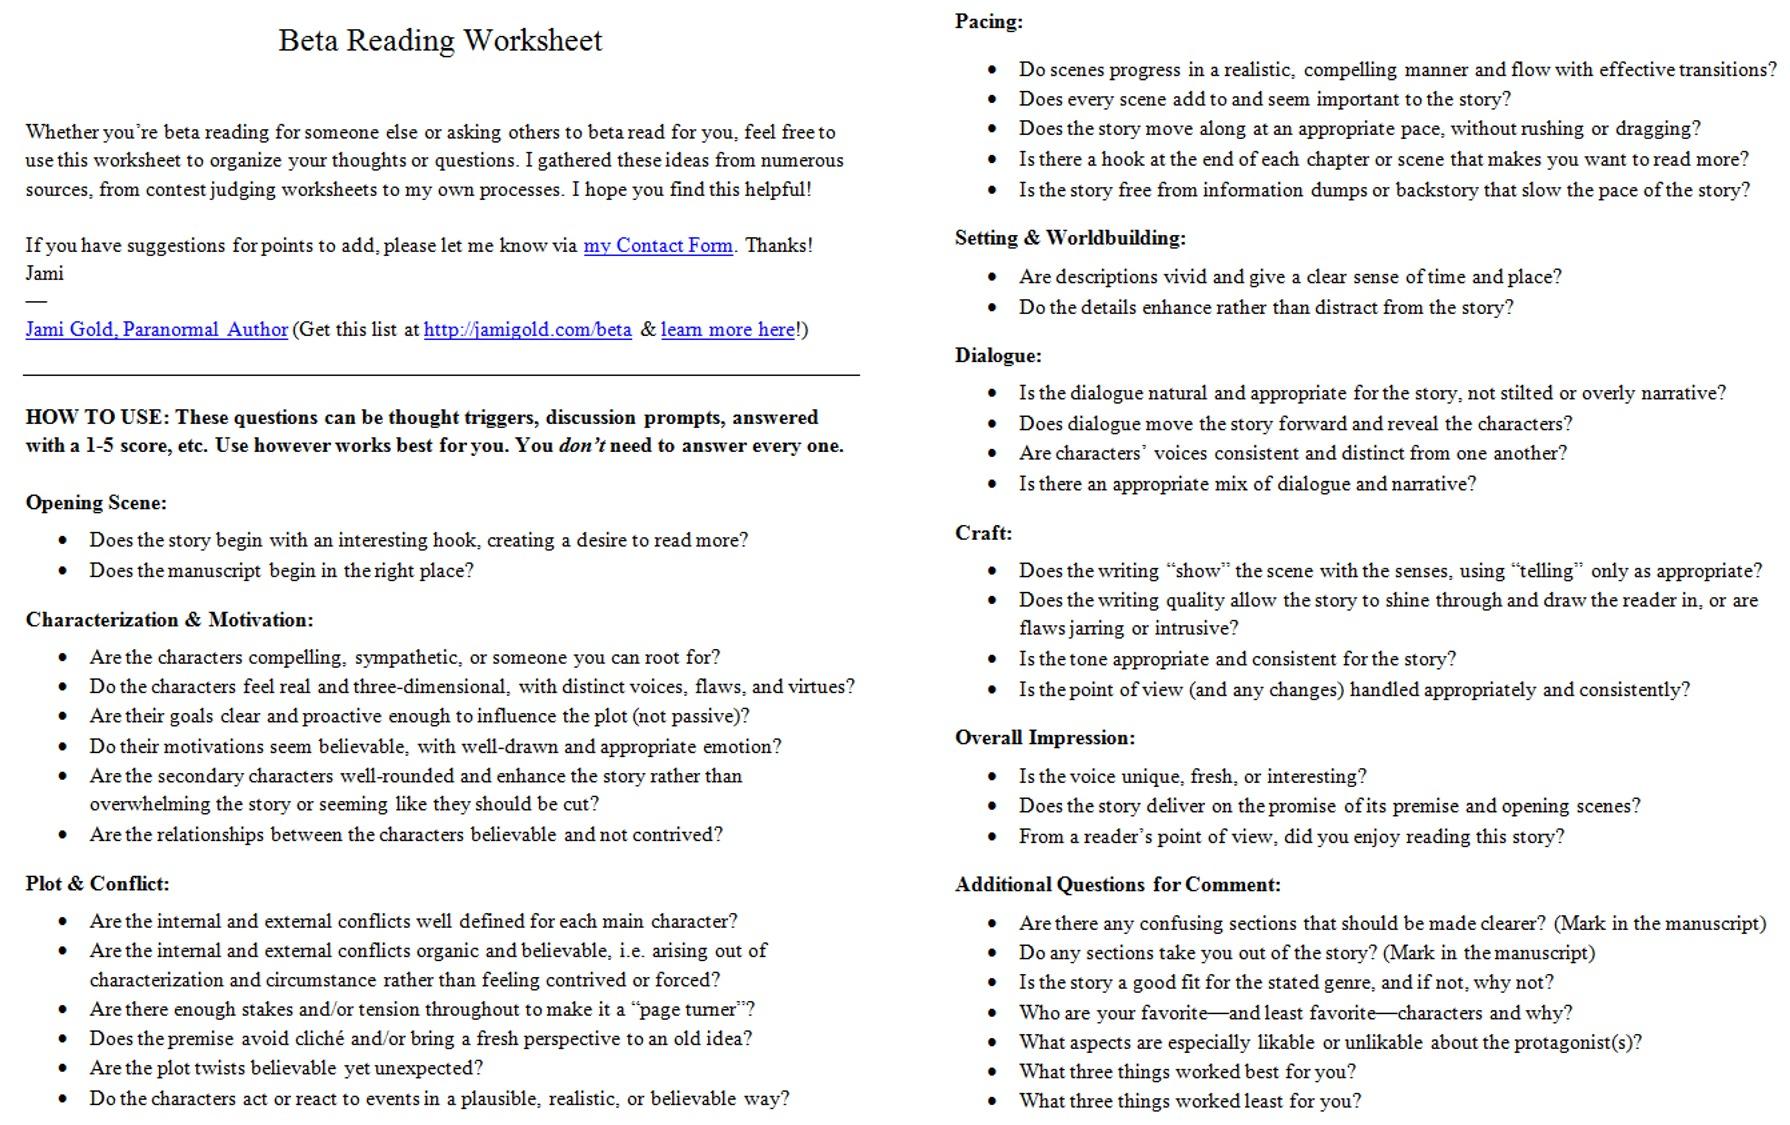 Weirdmailus  Seductive Worksheets For Writers  Jami Gold Paranormal Author With Exquisite Screen Shot Of The Twopage Beta Reading Worksheet With Adorable Fraction Decimal Worksheets Also Inferential Reading Comprehension Worksheets In Addition Multiplication Grade  Worksheets And Antonyms Worksheets For Grade  As Well As Fact Family Addition And Subtraction Worksheets Additionally Keywords In Math Word Problems Worksheet From Jamigoldcom With Weirdmailus  Exquisite Worksheets For Writers  Jami Gold Paranormal Author With Adorable Screen Shot Of The Twopage Beta Reading Worksheet And Seductive Fraction Decimal Worksheets Also Inferential Reading Comprehension Worksheets In Addition Multiplication Grade  Worksheets From Jamigoldcom